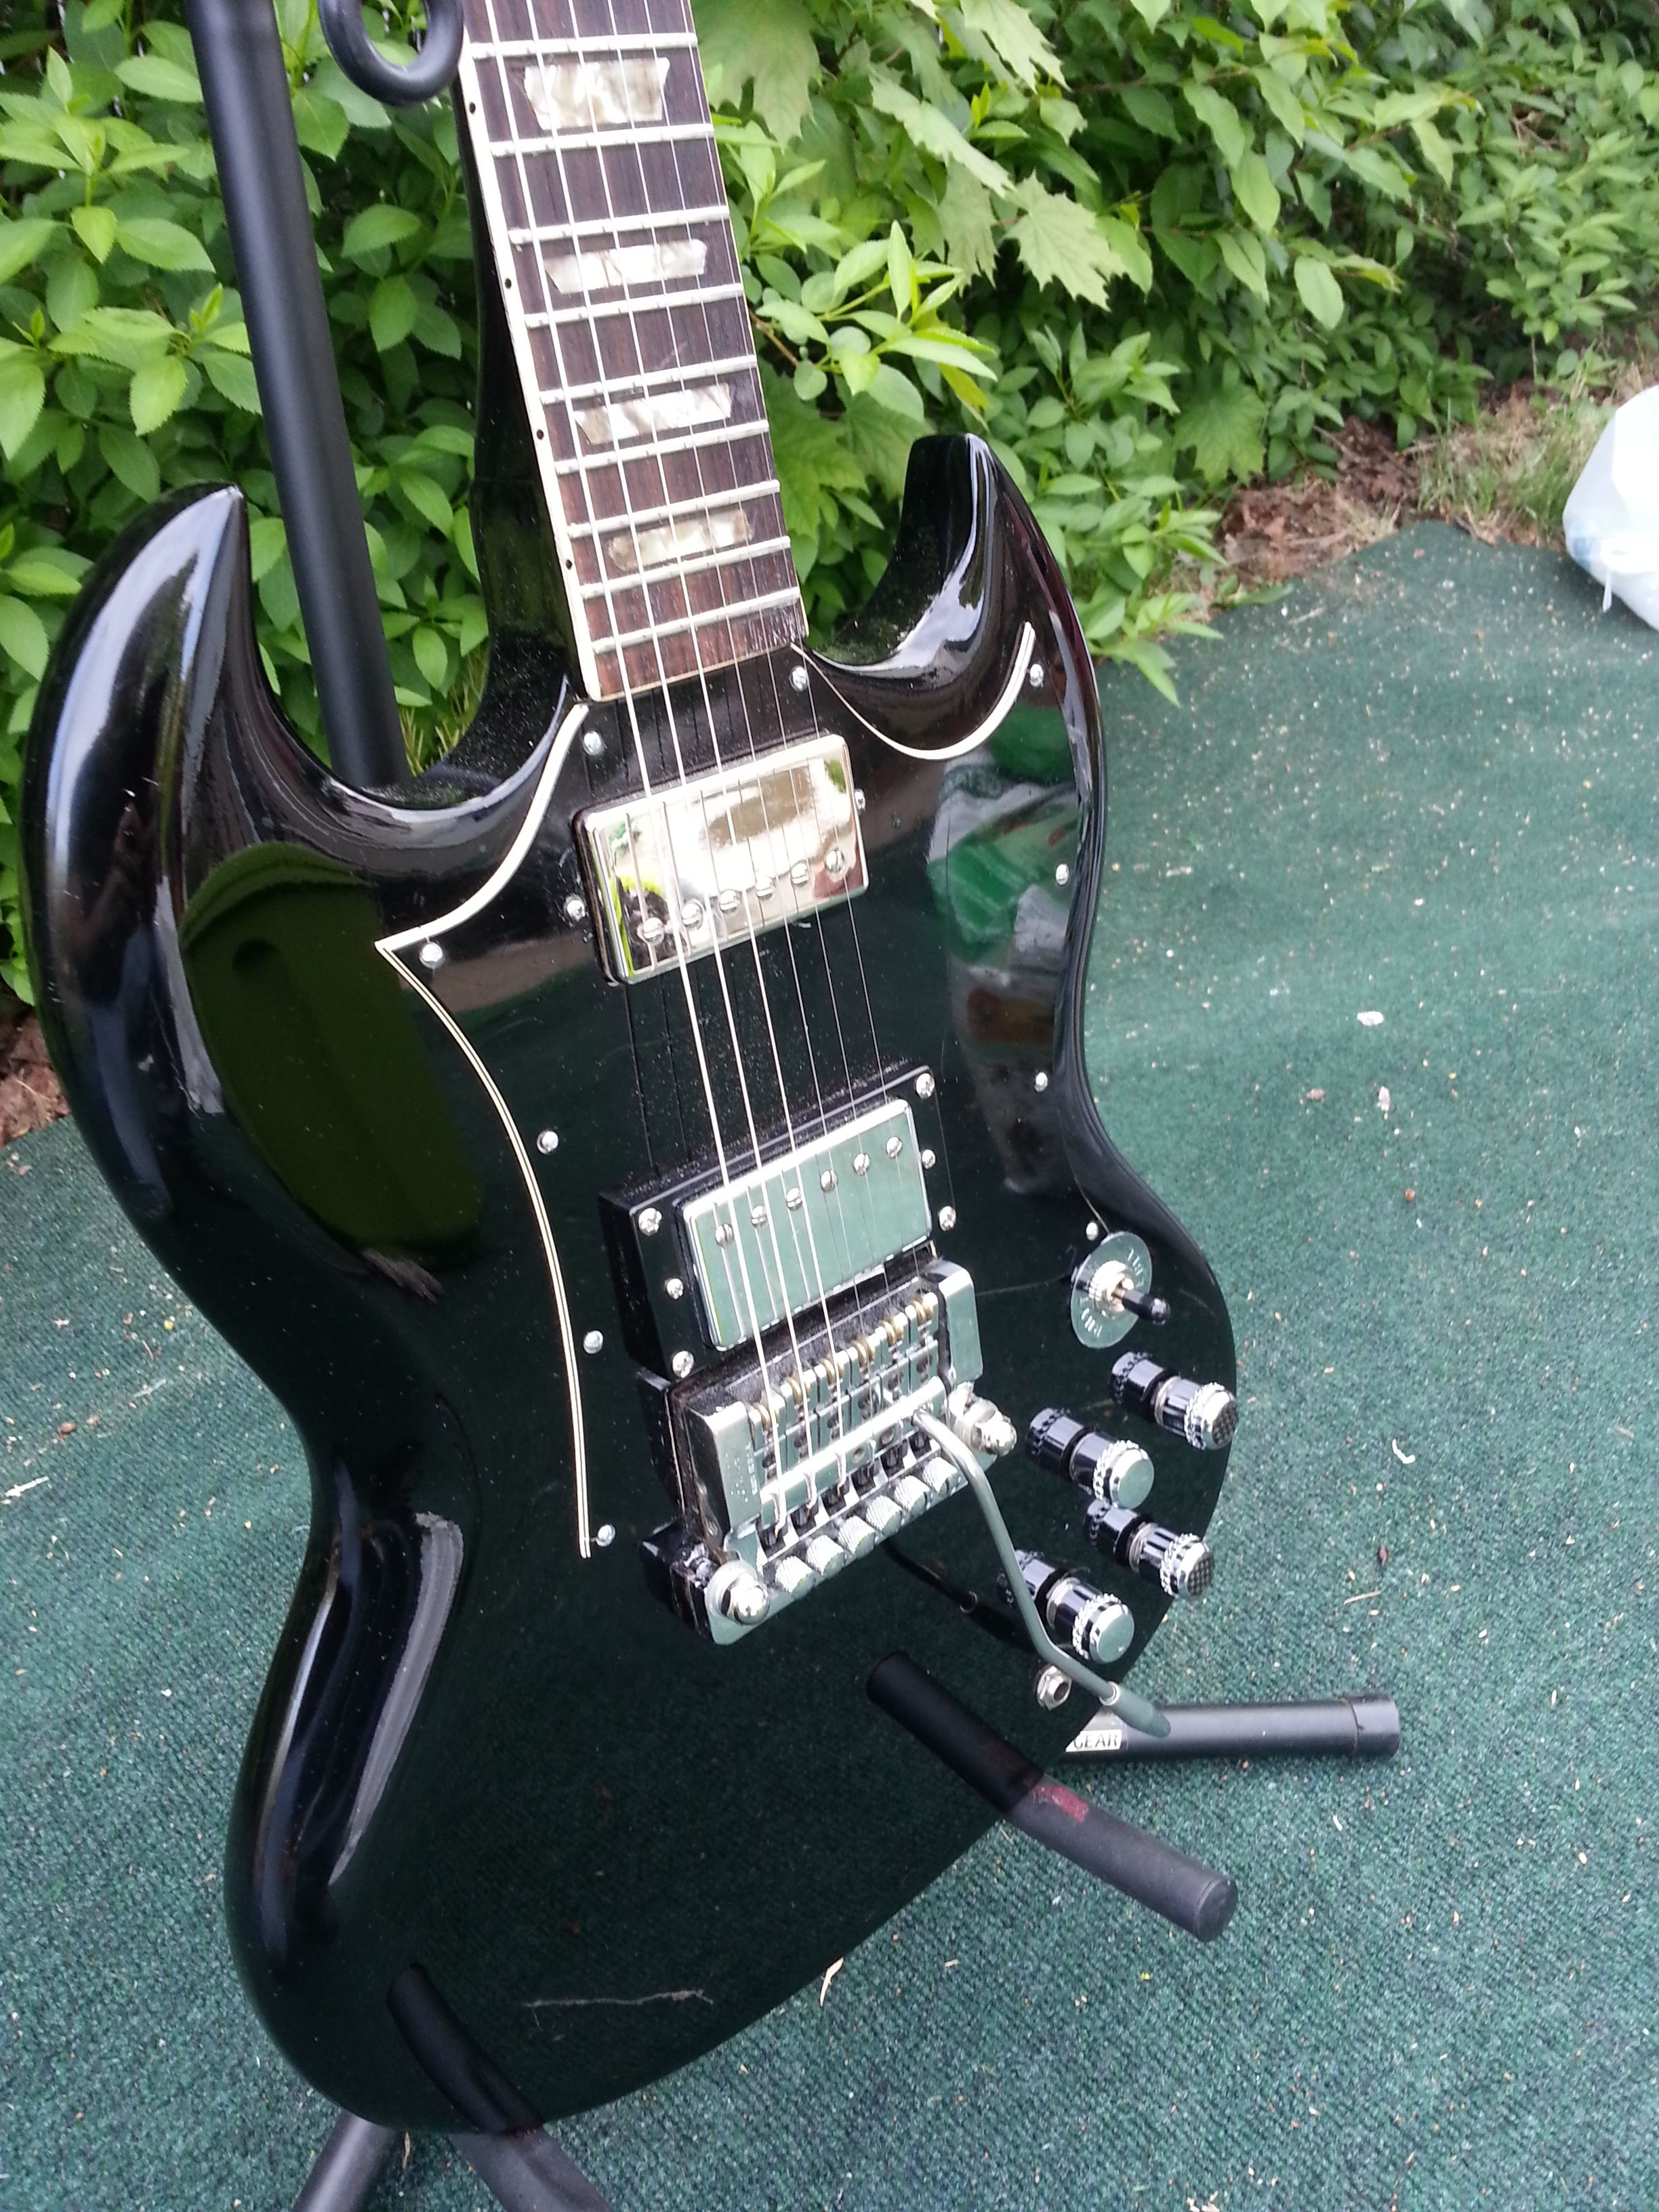 Fourth layer SG with Paladin chrome Beveled dome and carbon top knobs